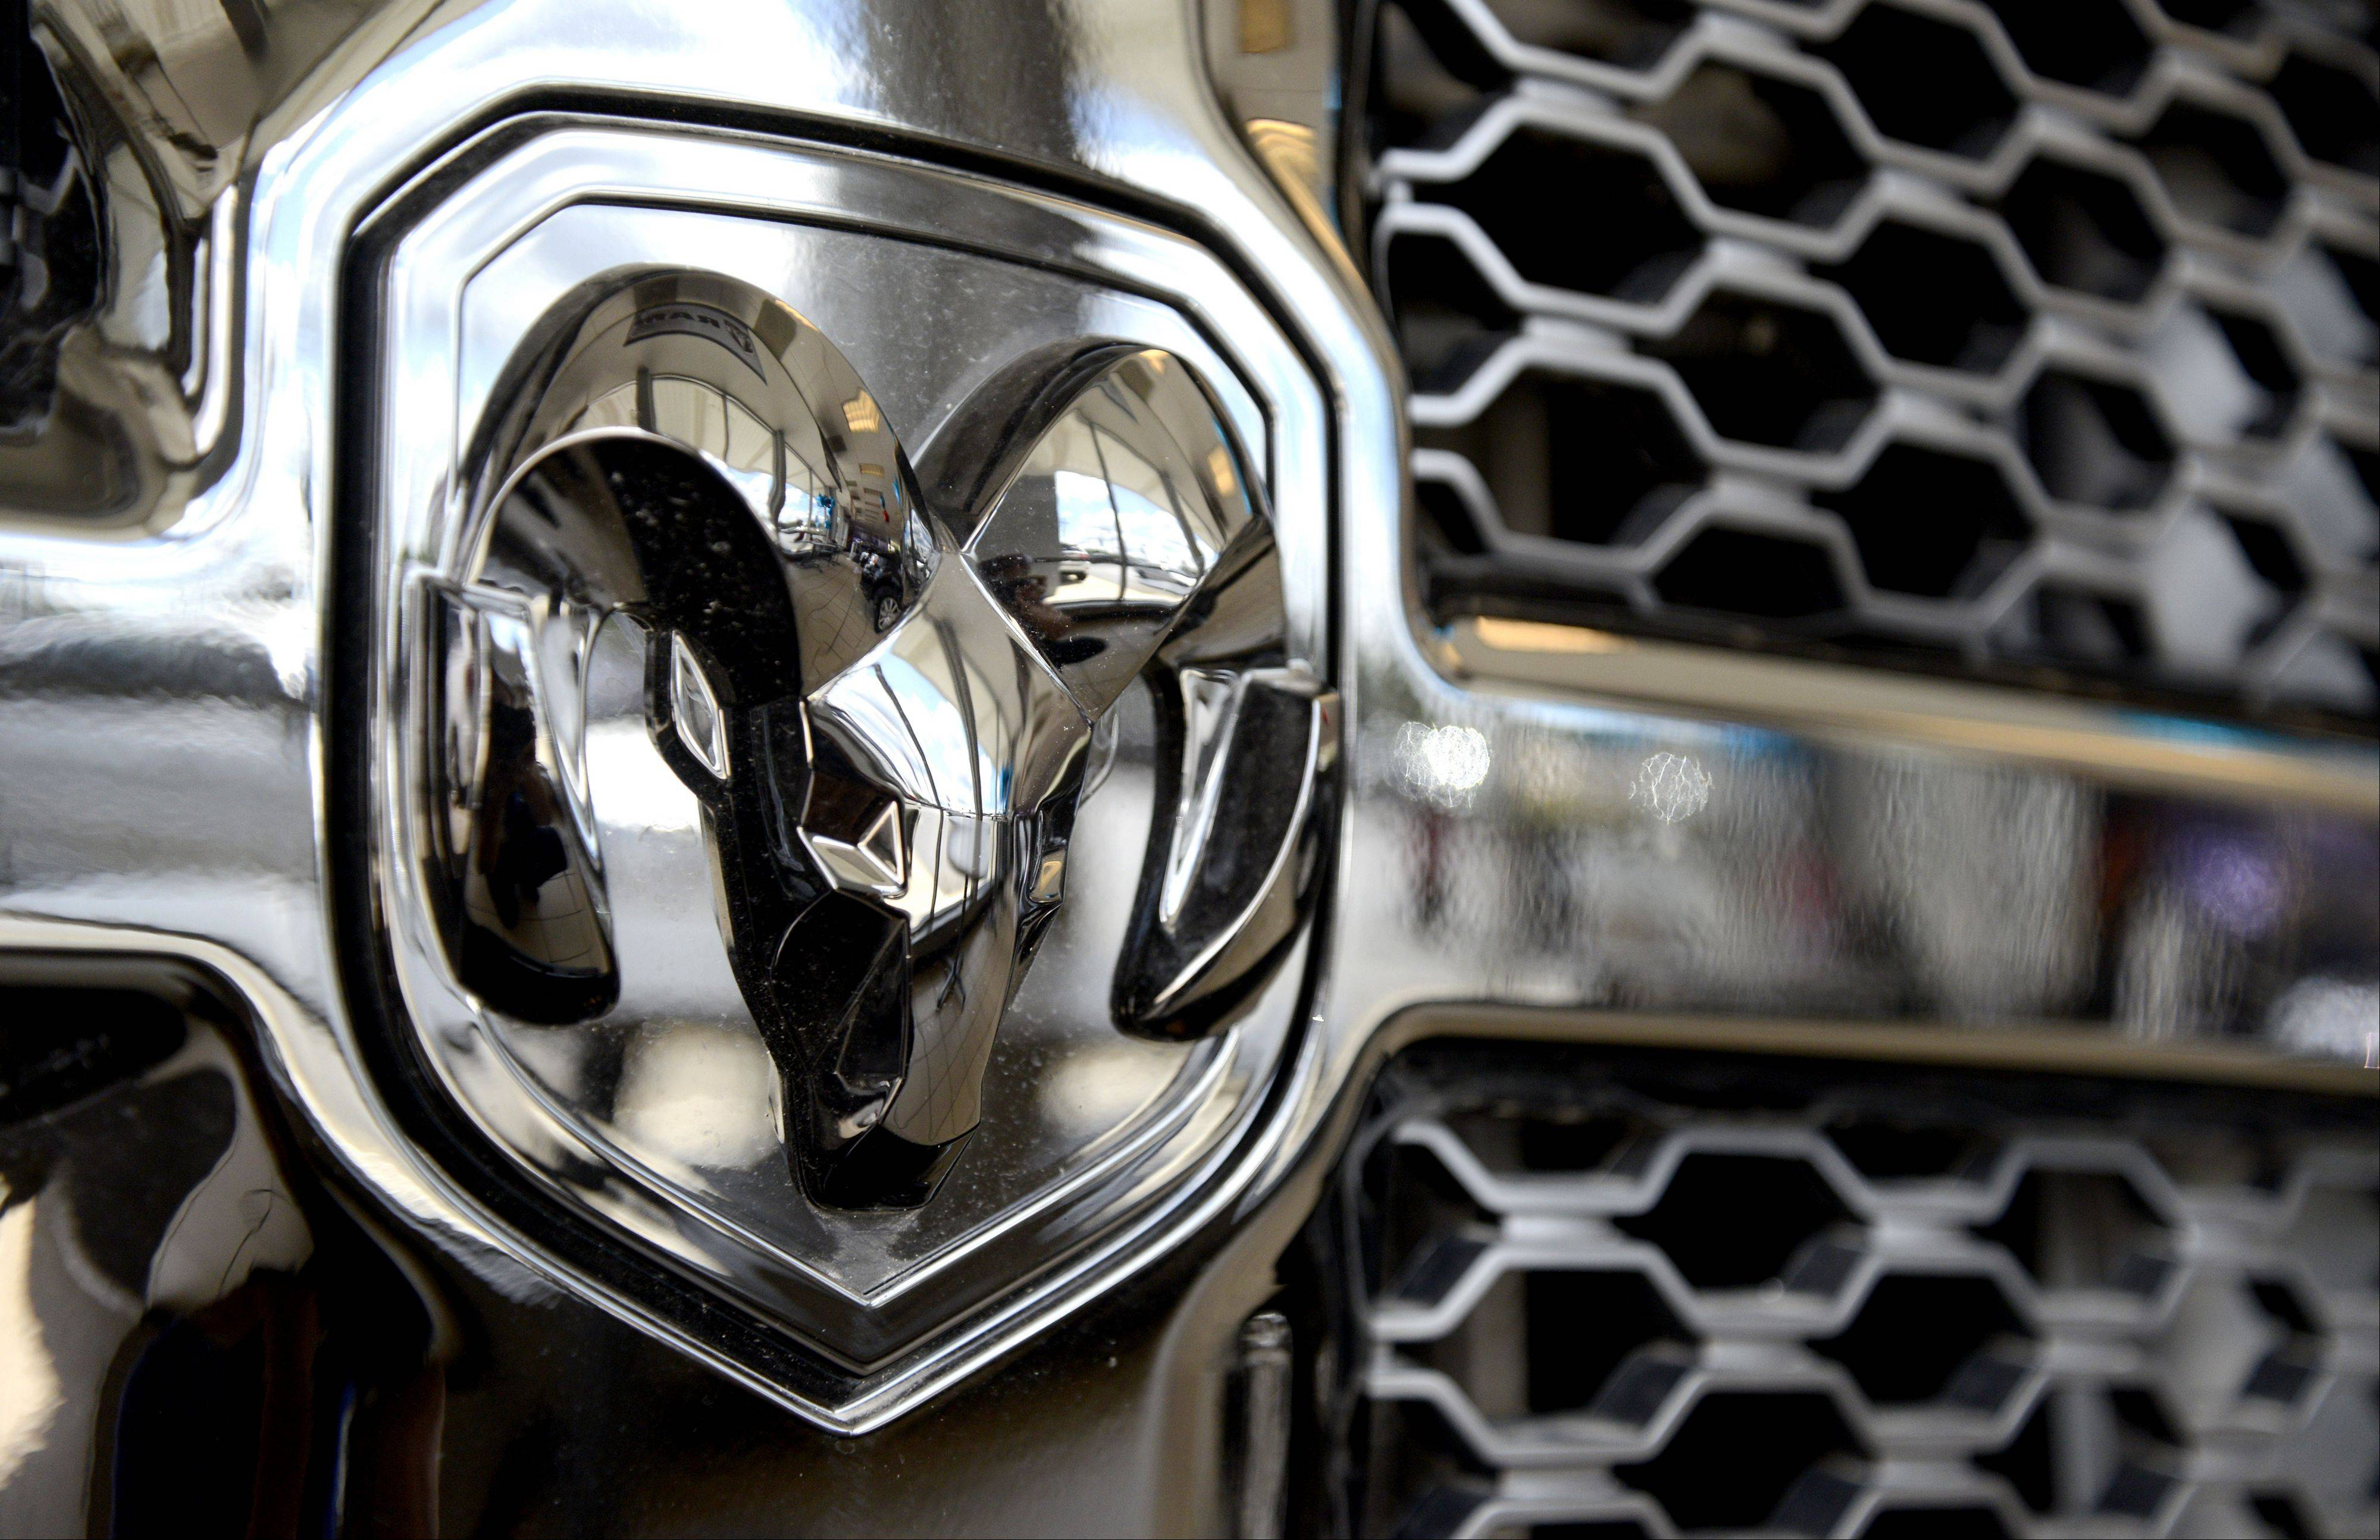 Chrysler sold more than 33,000 Ram pickups in August, the model's best August since 2006.